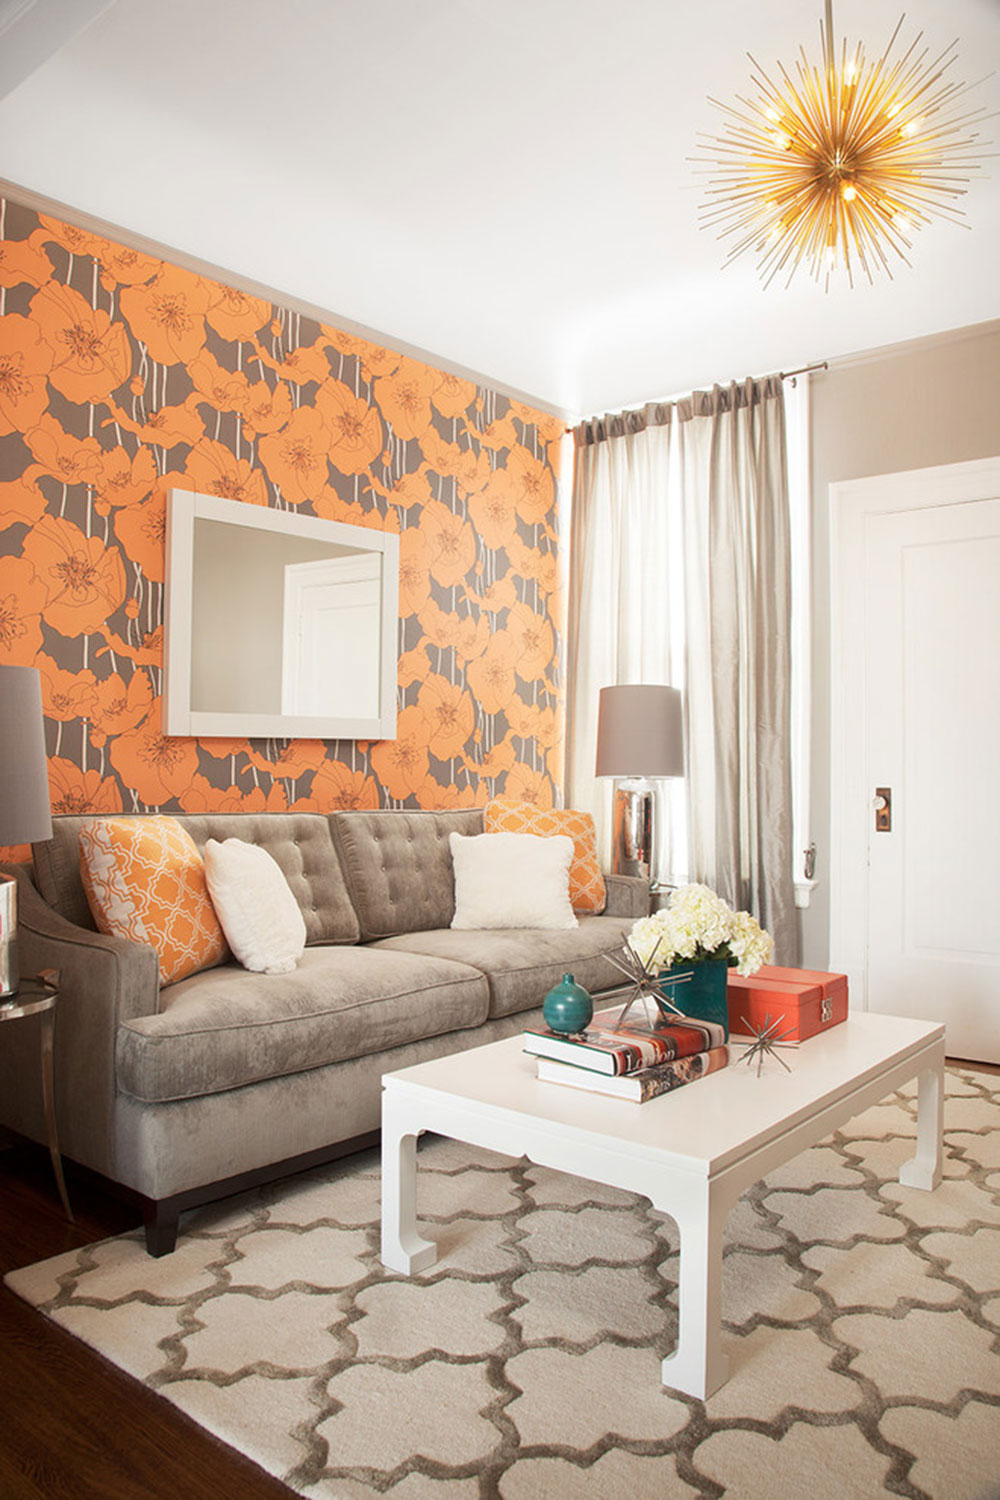 Adding Accents to a Neutral Interior with Color18 Adding Accents to a Neutral Interior with Color